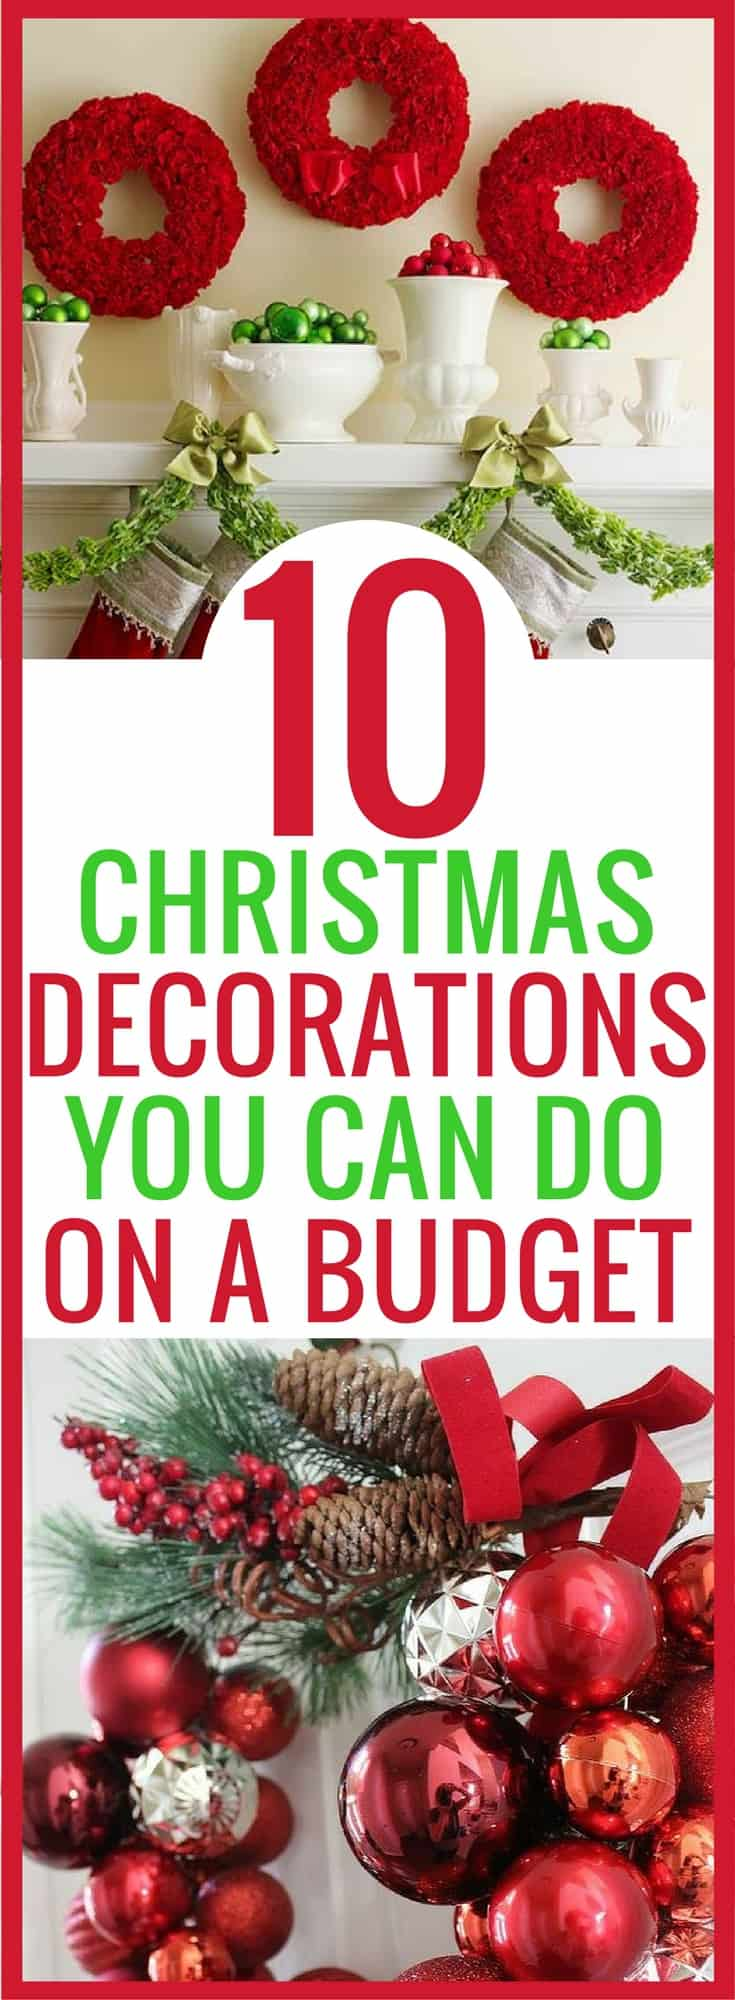 I love decorating for Christmas and the home decor stores make me want to decorate my house like out of a magazine. But I can't afford those beautiful Christmas decorations on a budget. These cheap Christmas decorations are exactly what I need to decorate my house DIY style. Cheap Christmas Decorations | Christmas Decor | DIY Christmas | Dollar Store Decorating |